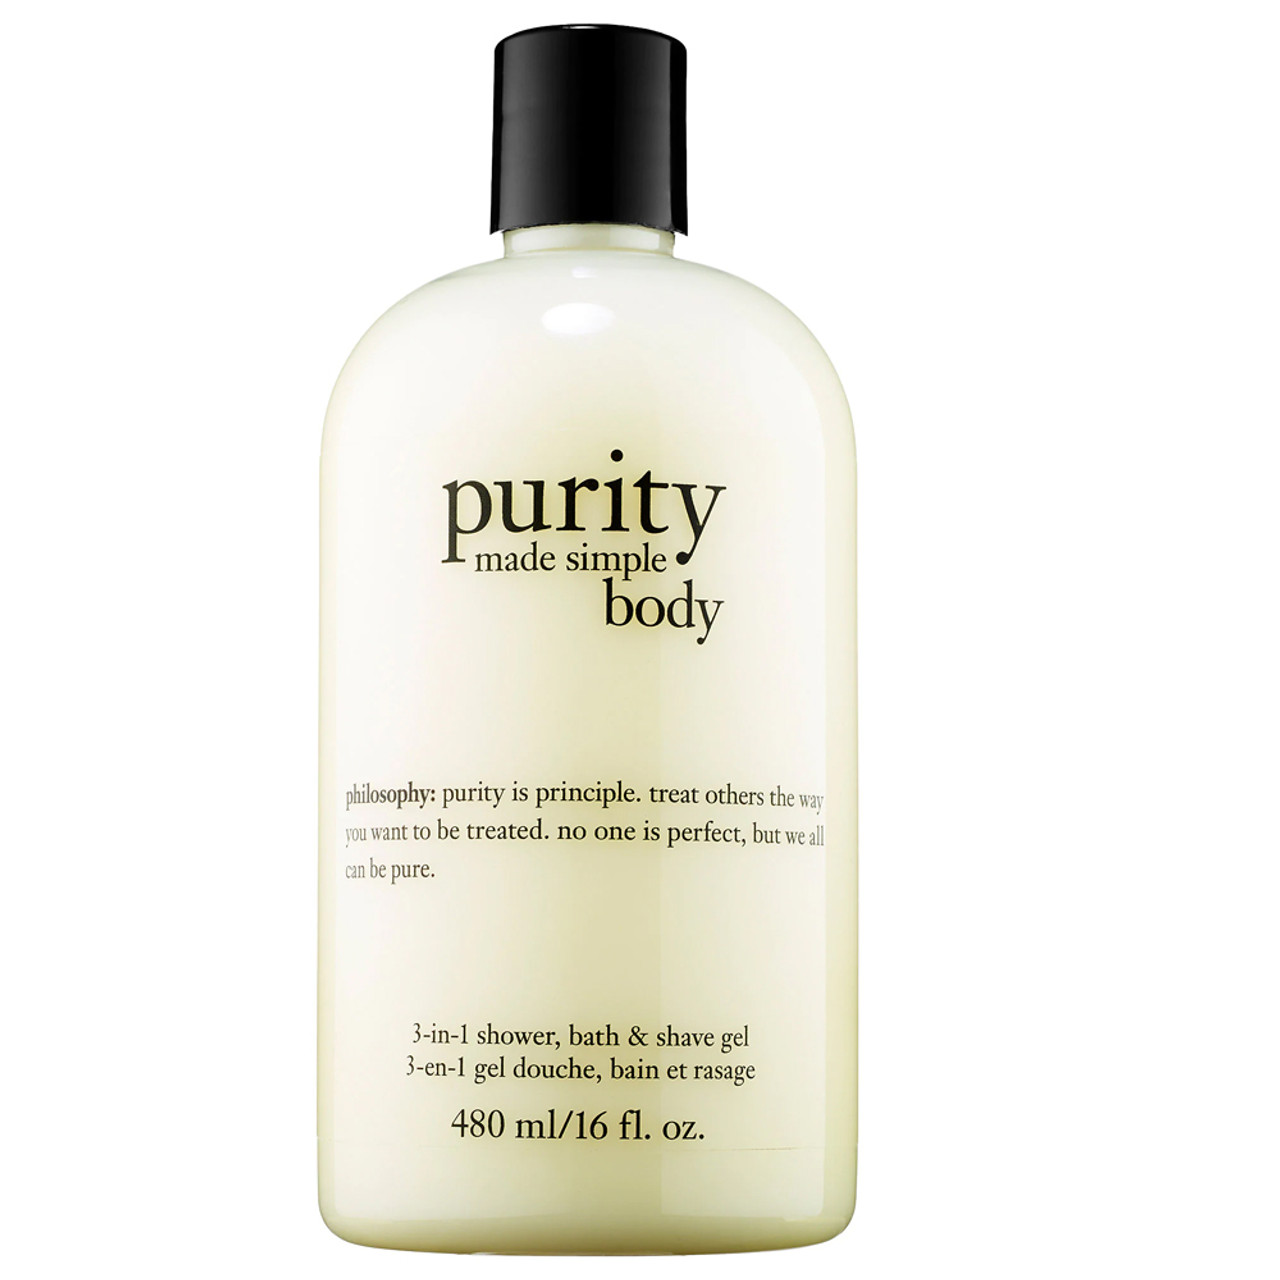 philosophy Purity Made Simple Body 3-In-1 Shower, Bath & Shave Gel